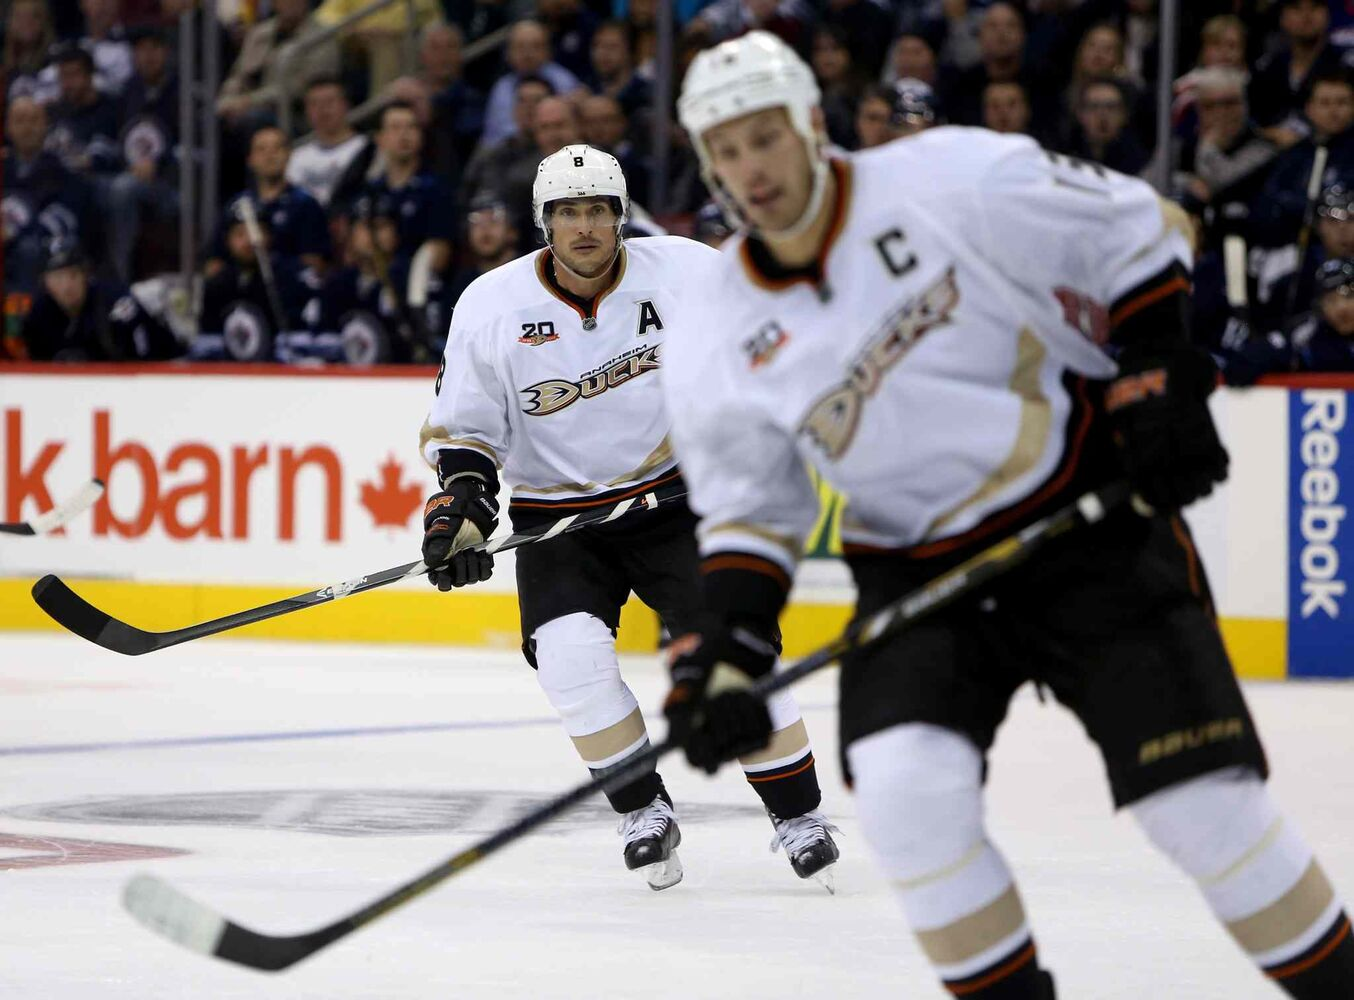 Anaheim Ducks' Teemu Selanne, left, and Ryan Getzlaf take a second- period shift.